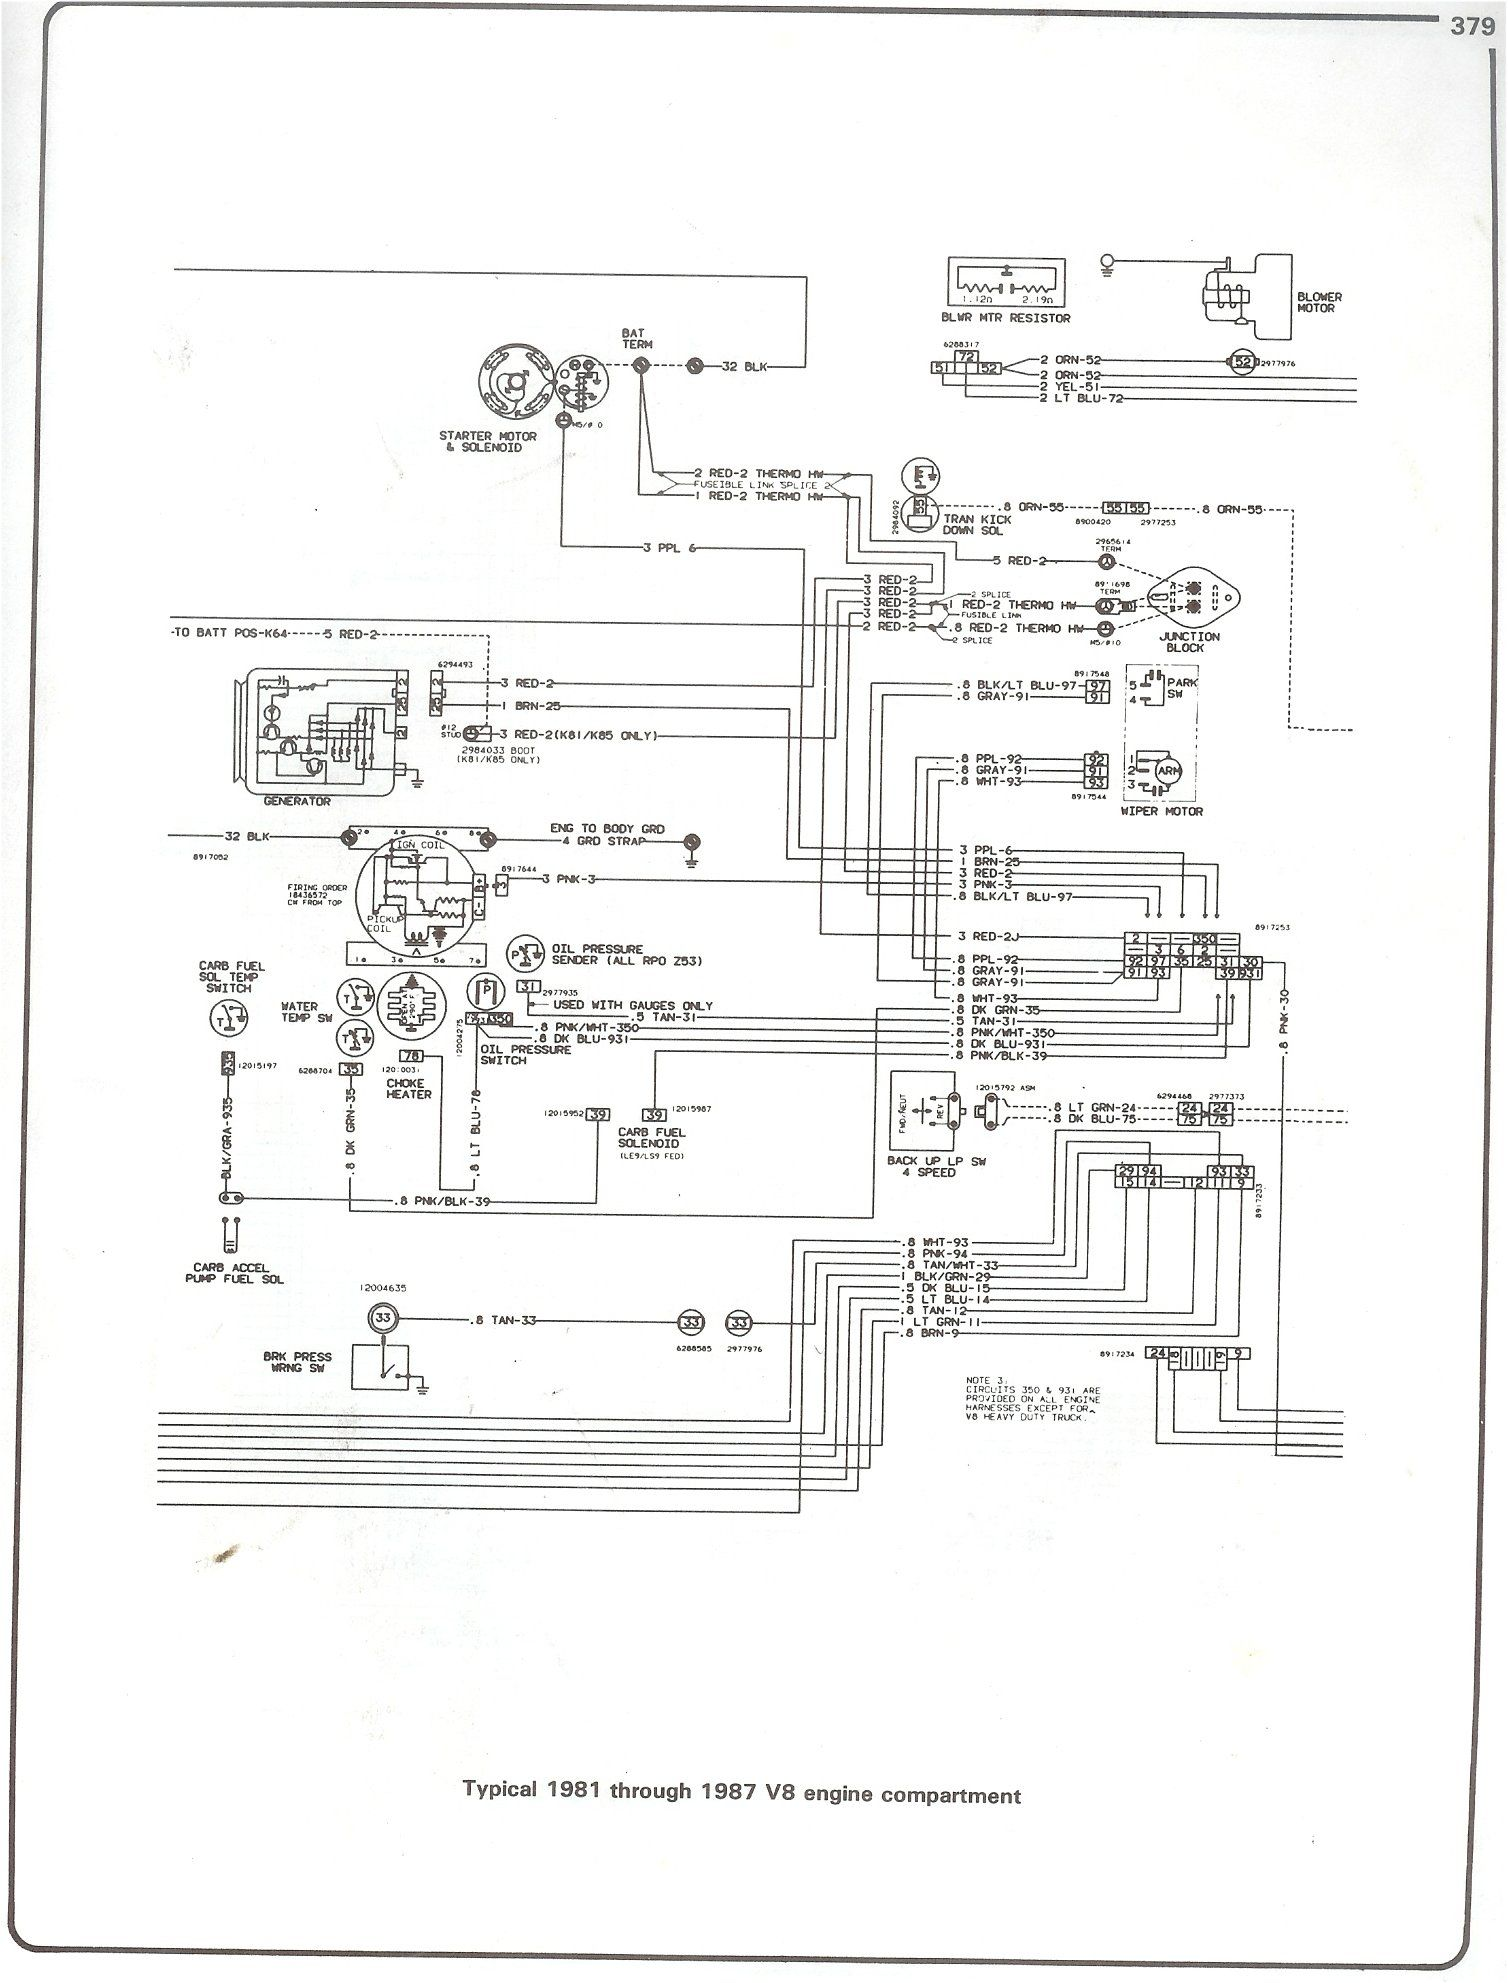 Pin By Malcolm Cail On Projects To Try Pinterest Trucks. 85 Chevy Truck Wiring Diagram 7387chevytrucks. Chevrolet. 1973 Chevrolet K10 Wiring At Scoala.co